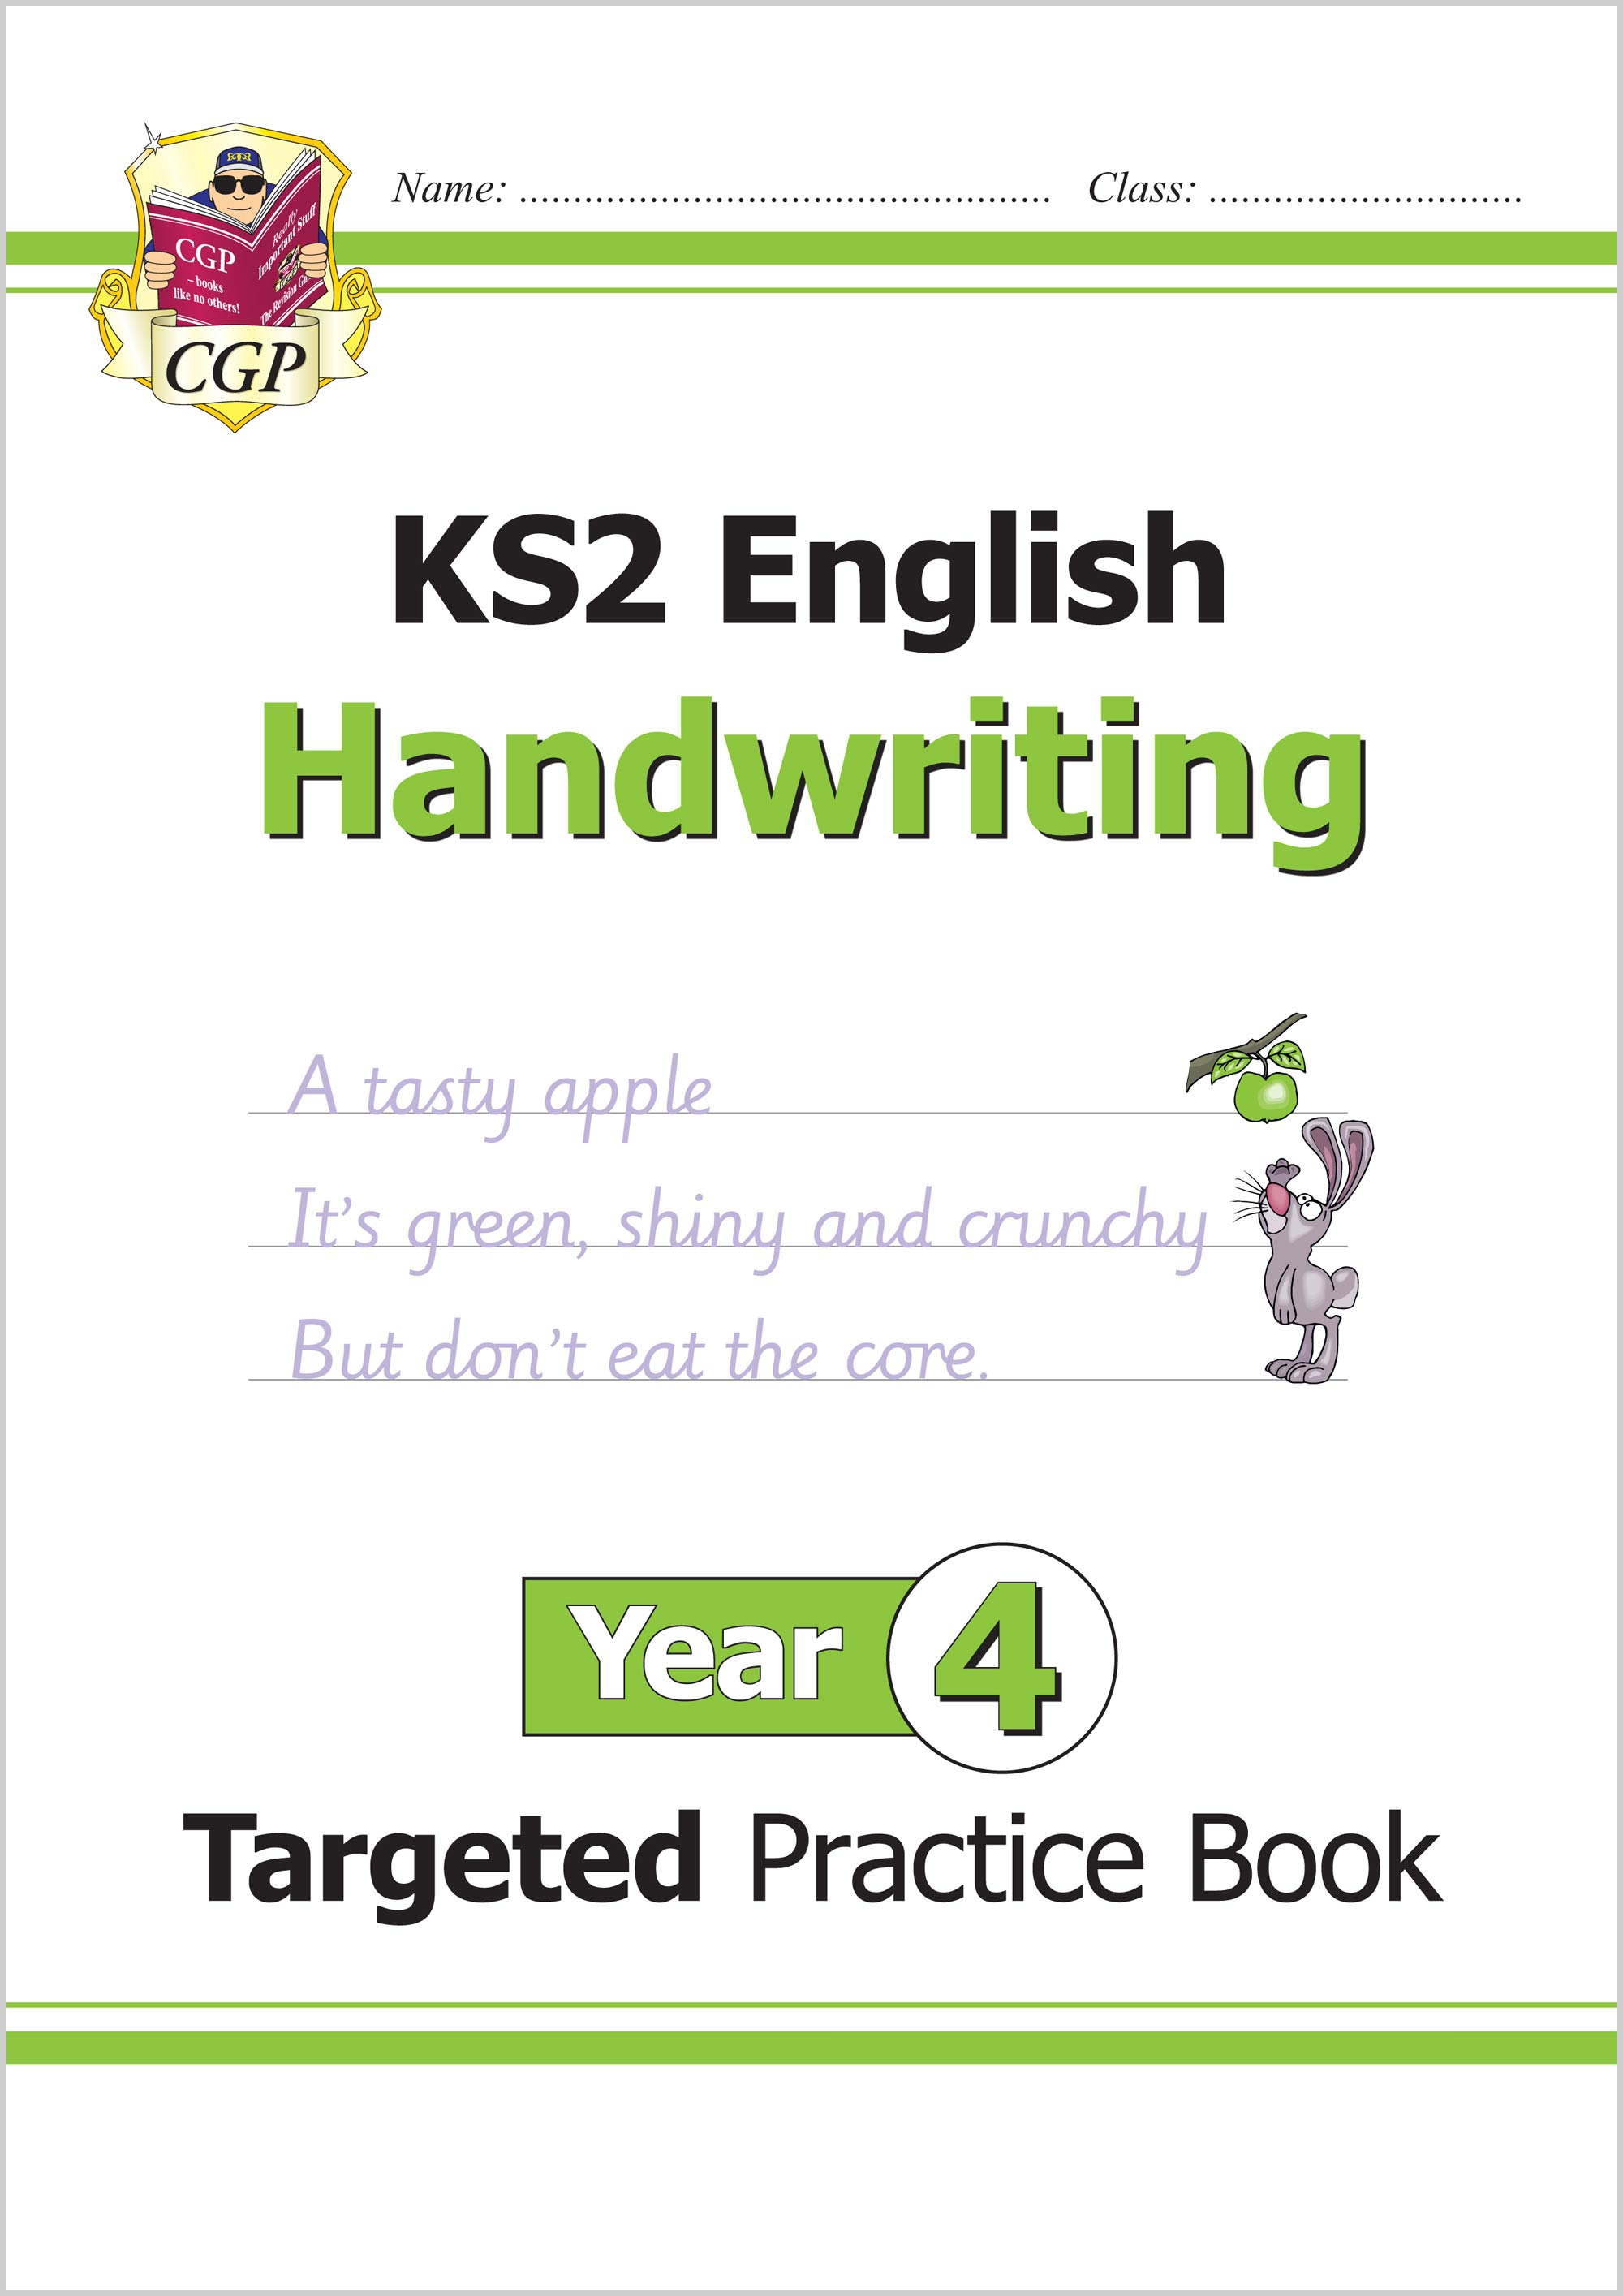 E4HHW22 - KS2 English Targeted Practice Book: Handwriting - Year 4